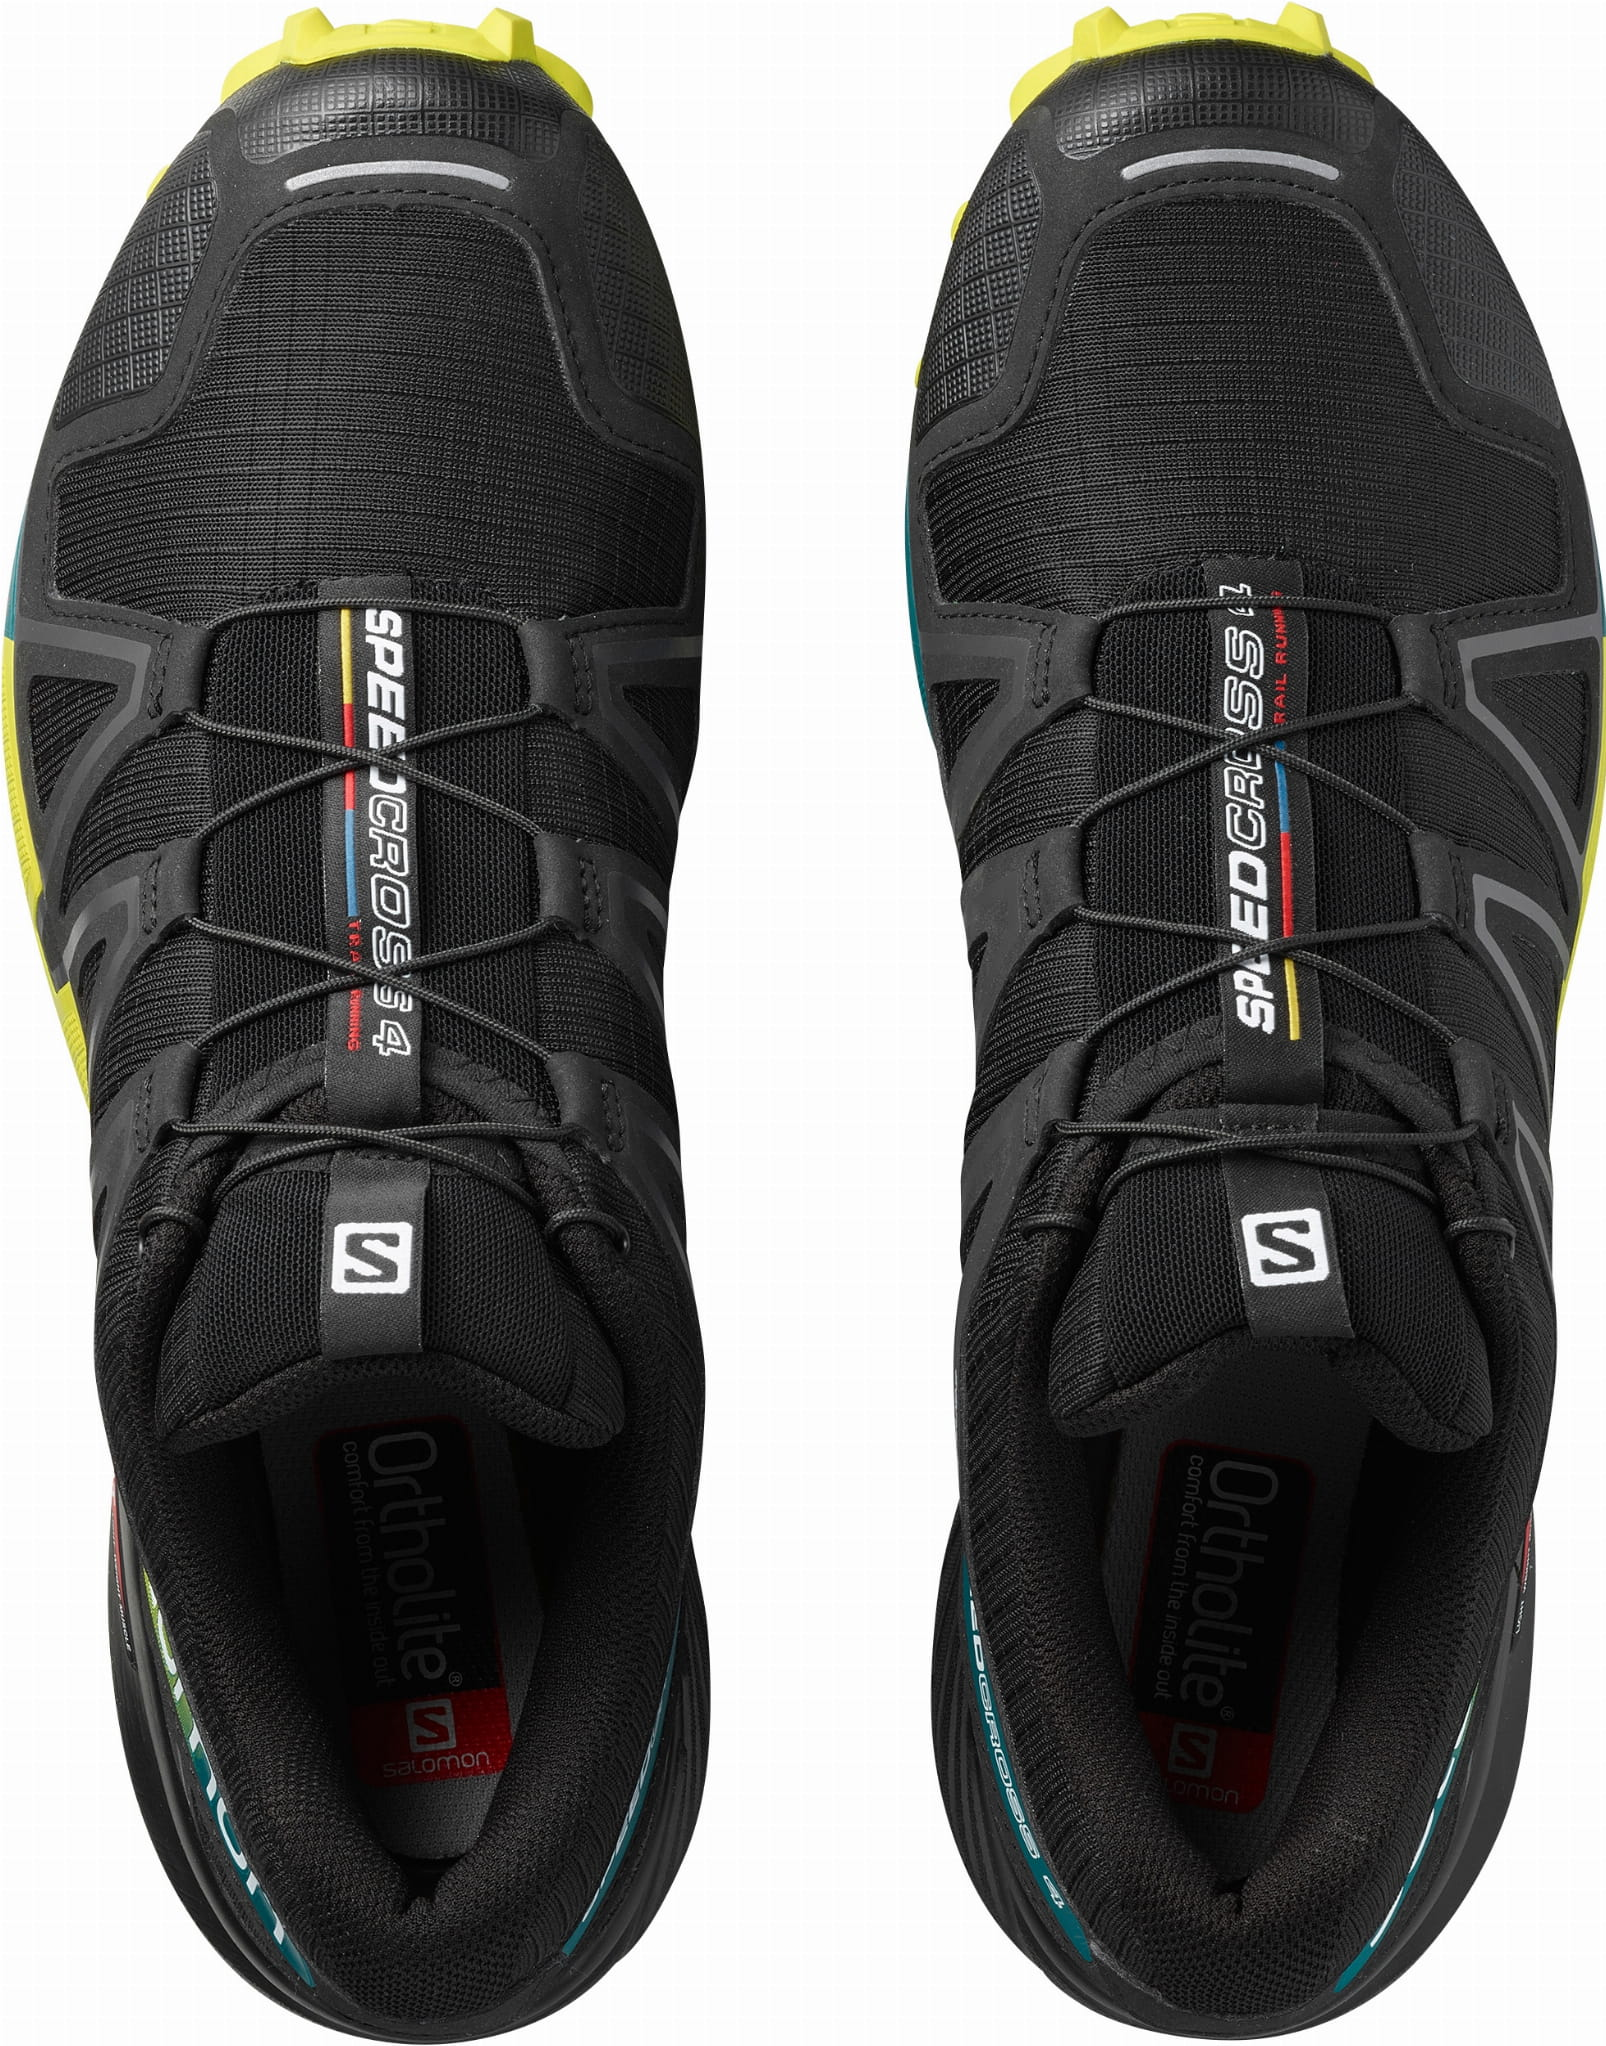 BUTY MĘSKIE SALOMON SPEEDCROSS 4 M 392398 EVERGLAD